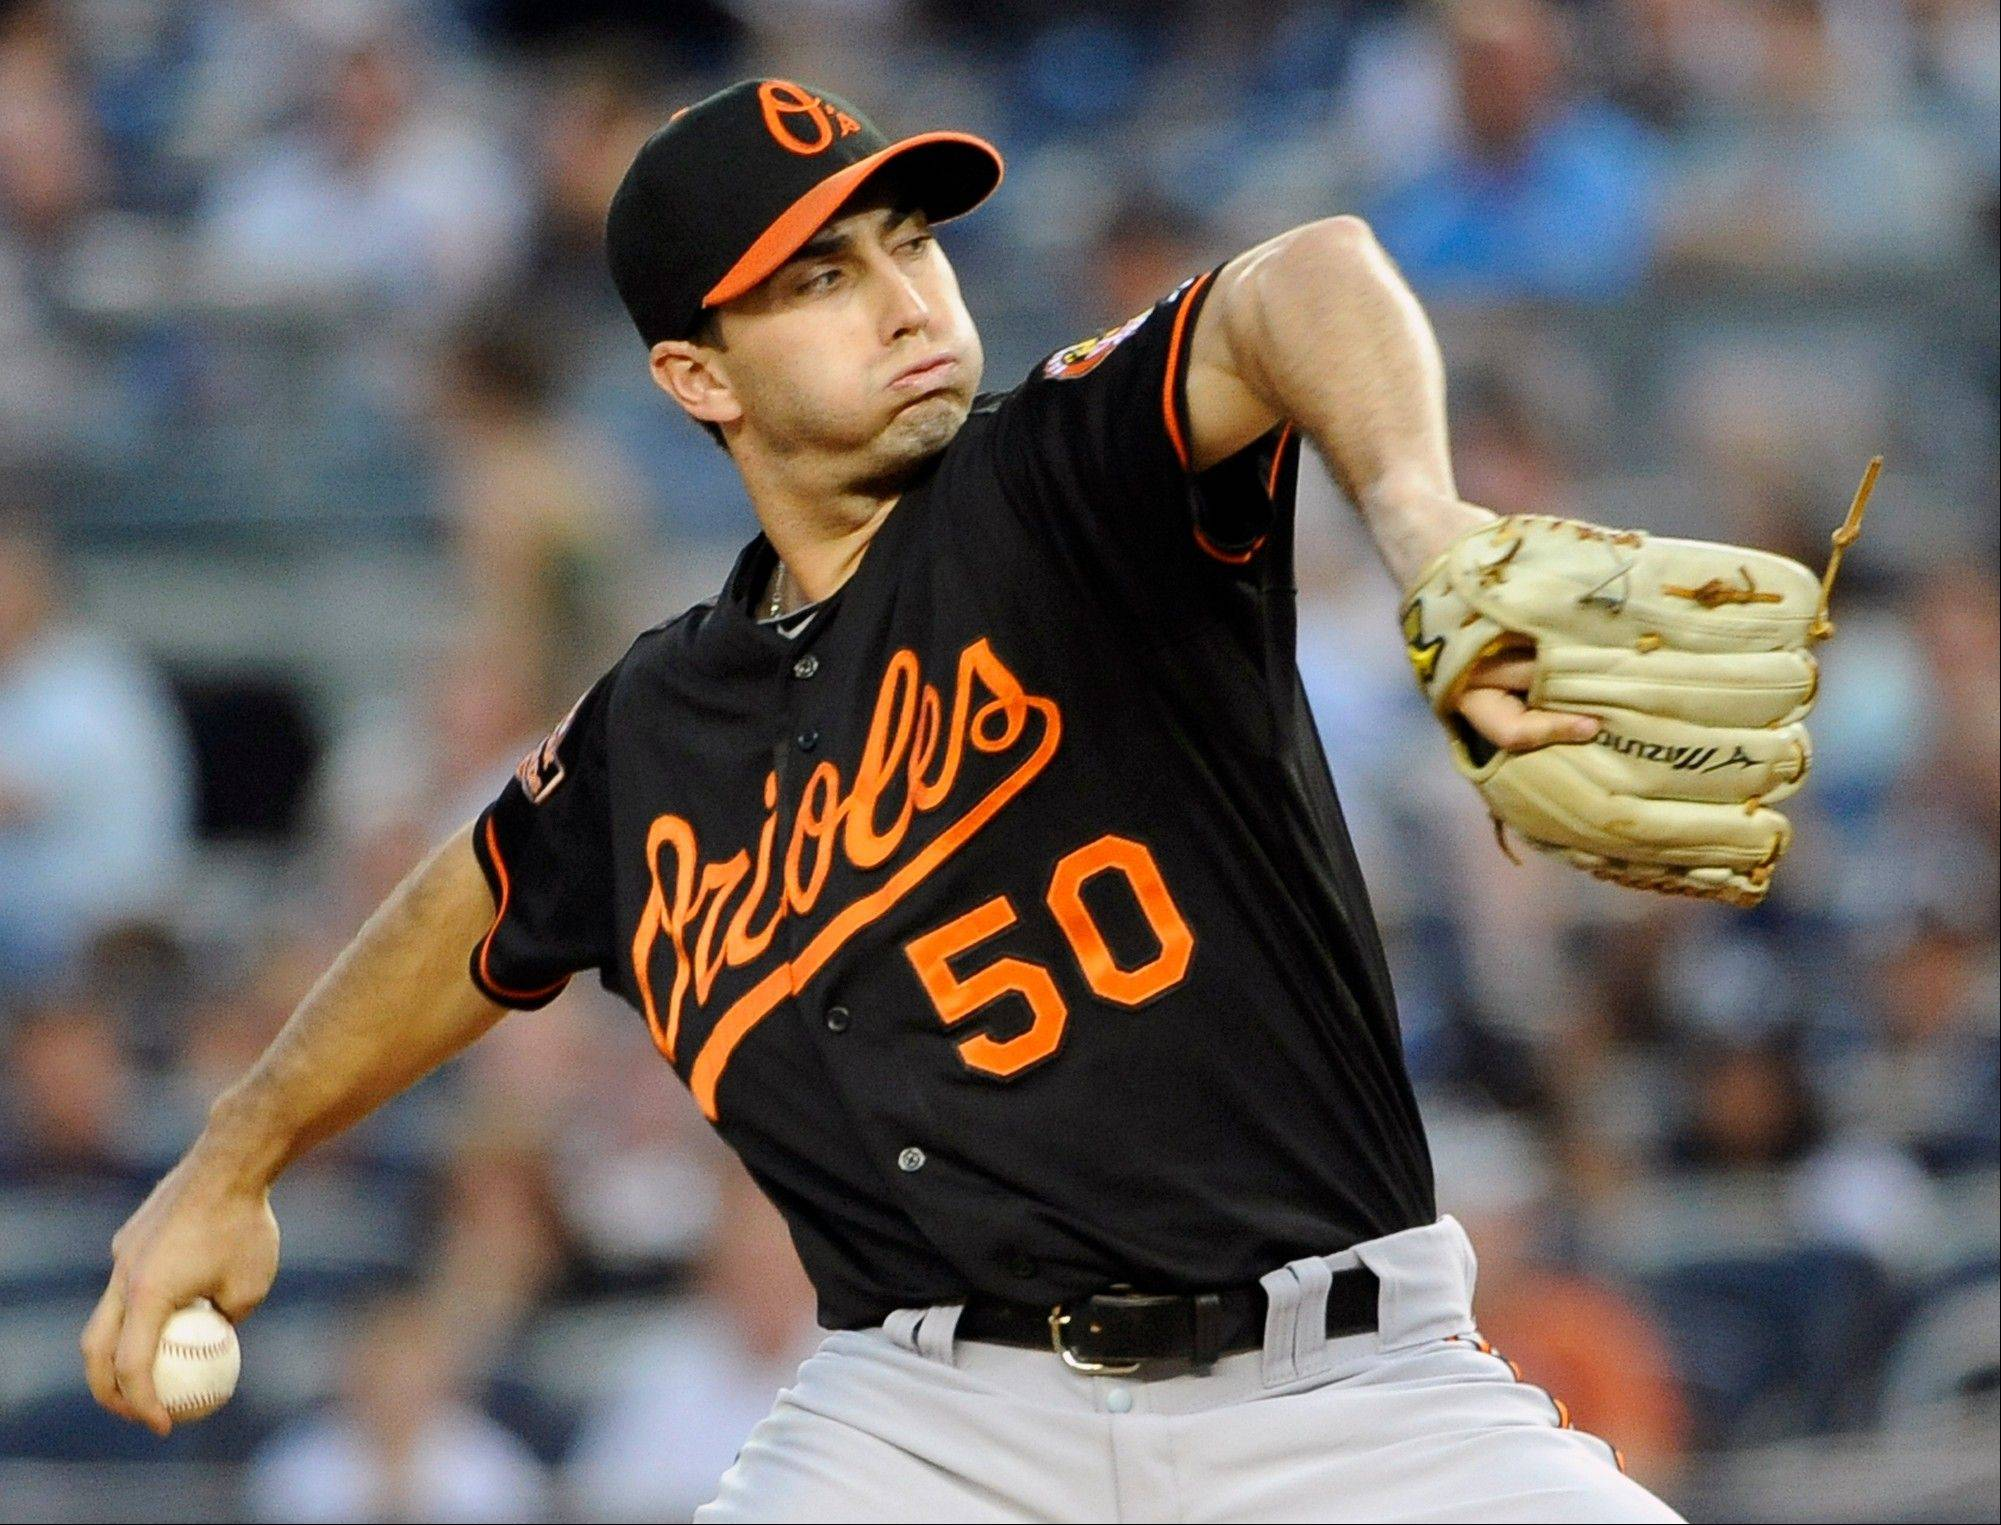 Baltimore Orioles starting pitcher Miguel Gonzalez struck out a career-high nine Friday night against the Yankees in New York.